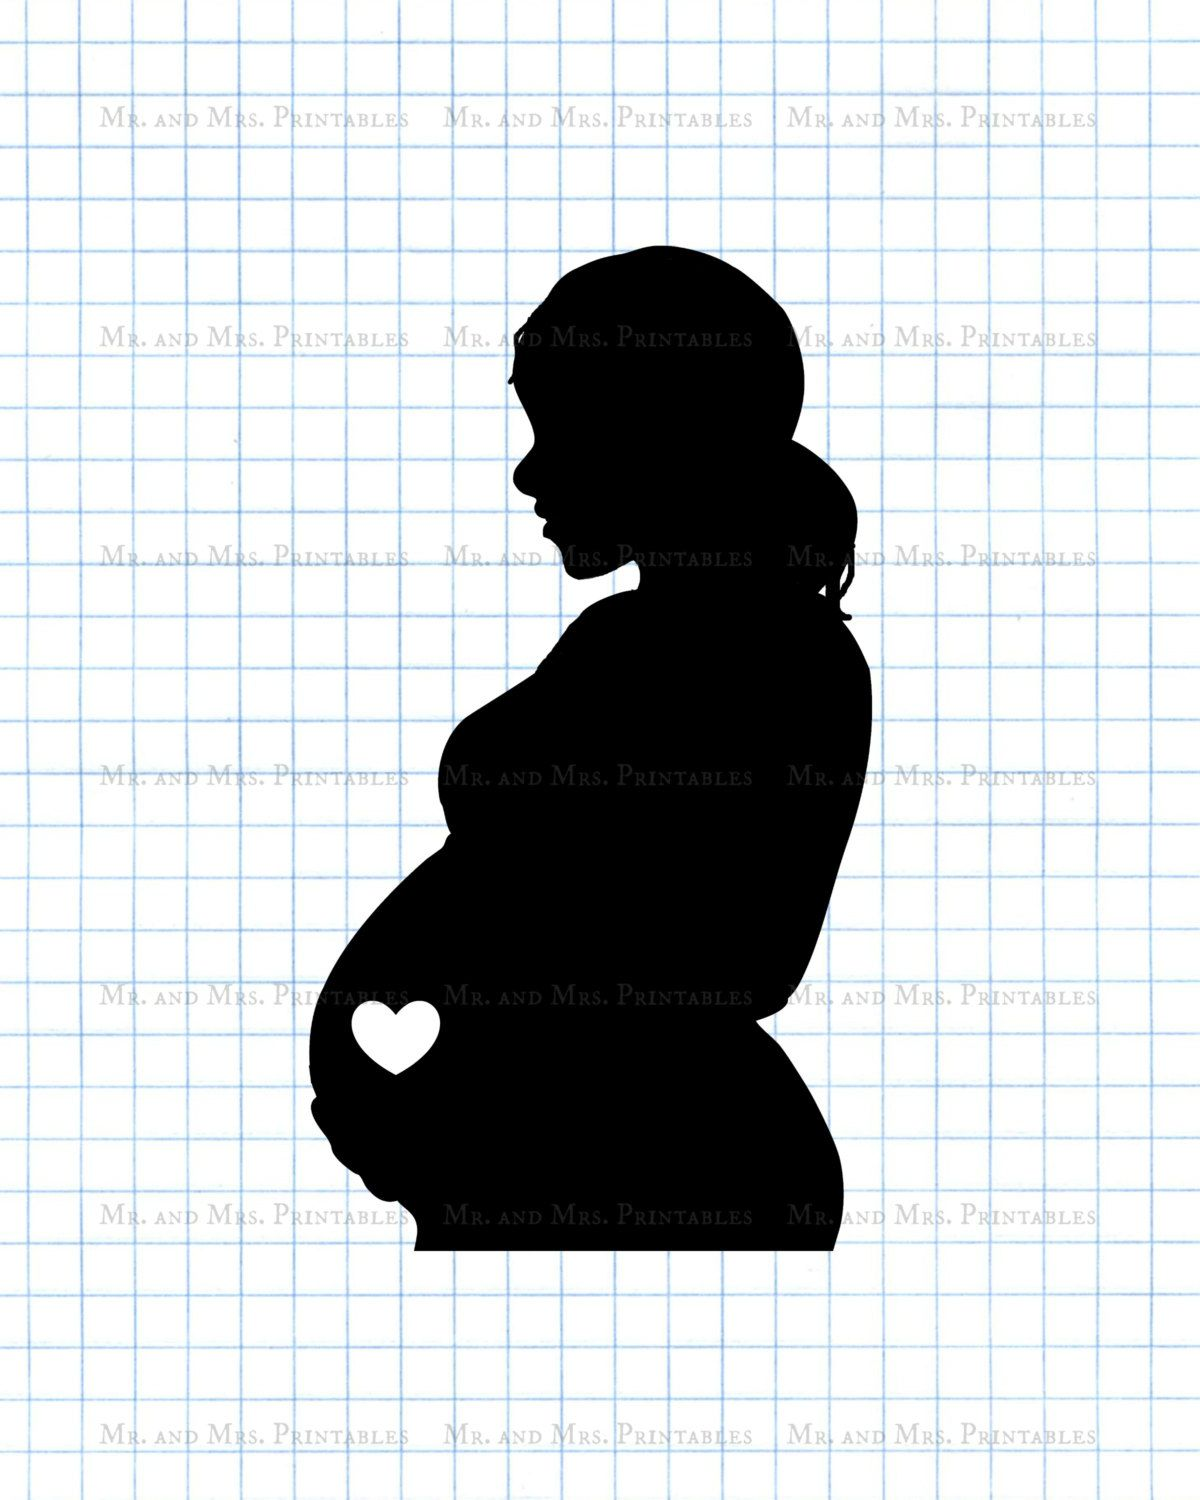 Pregnant clipart, pregnancy image, scrapbook images,belly silhouette.